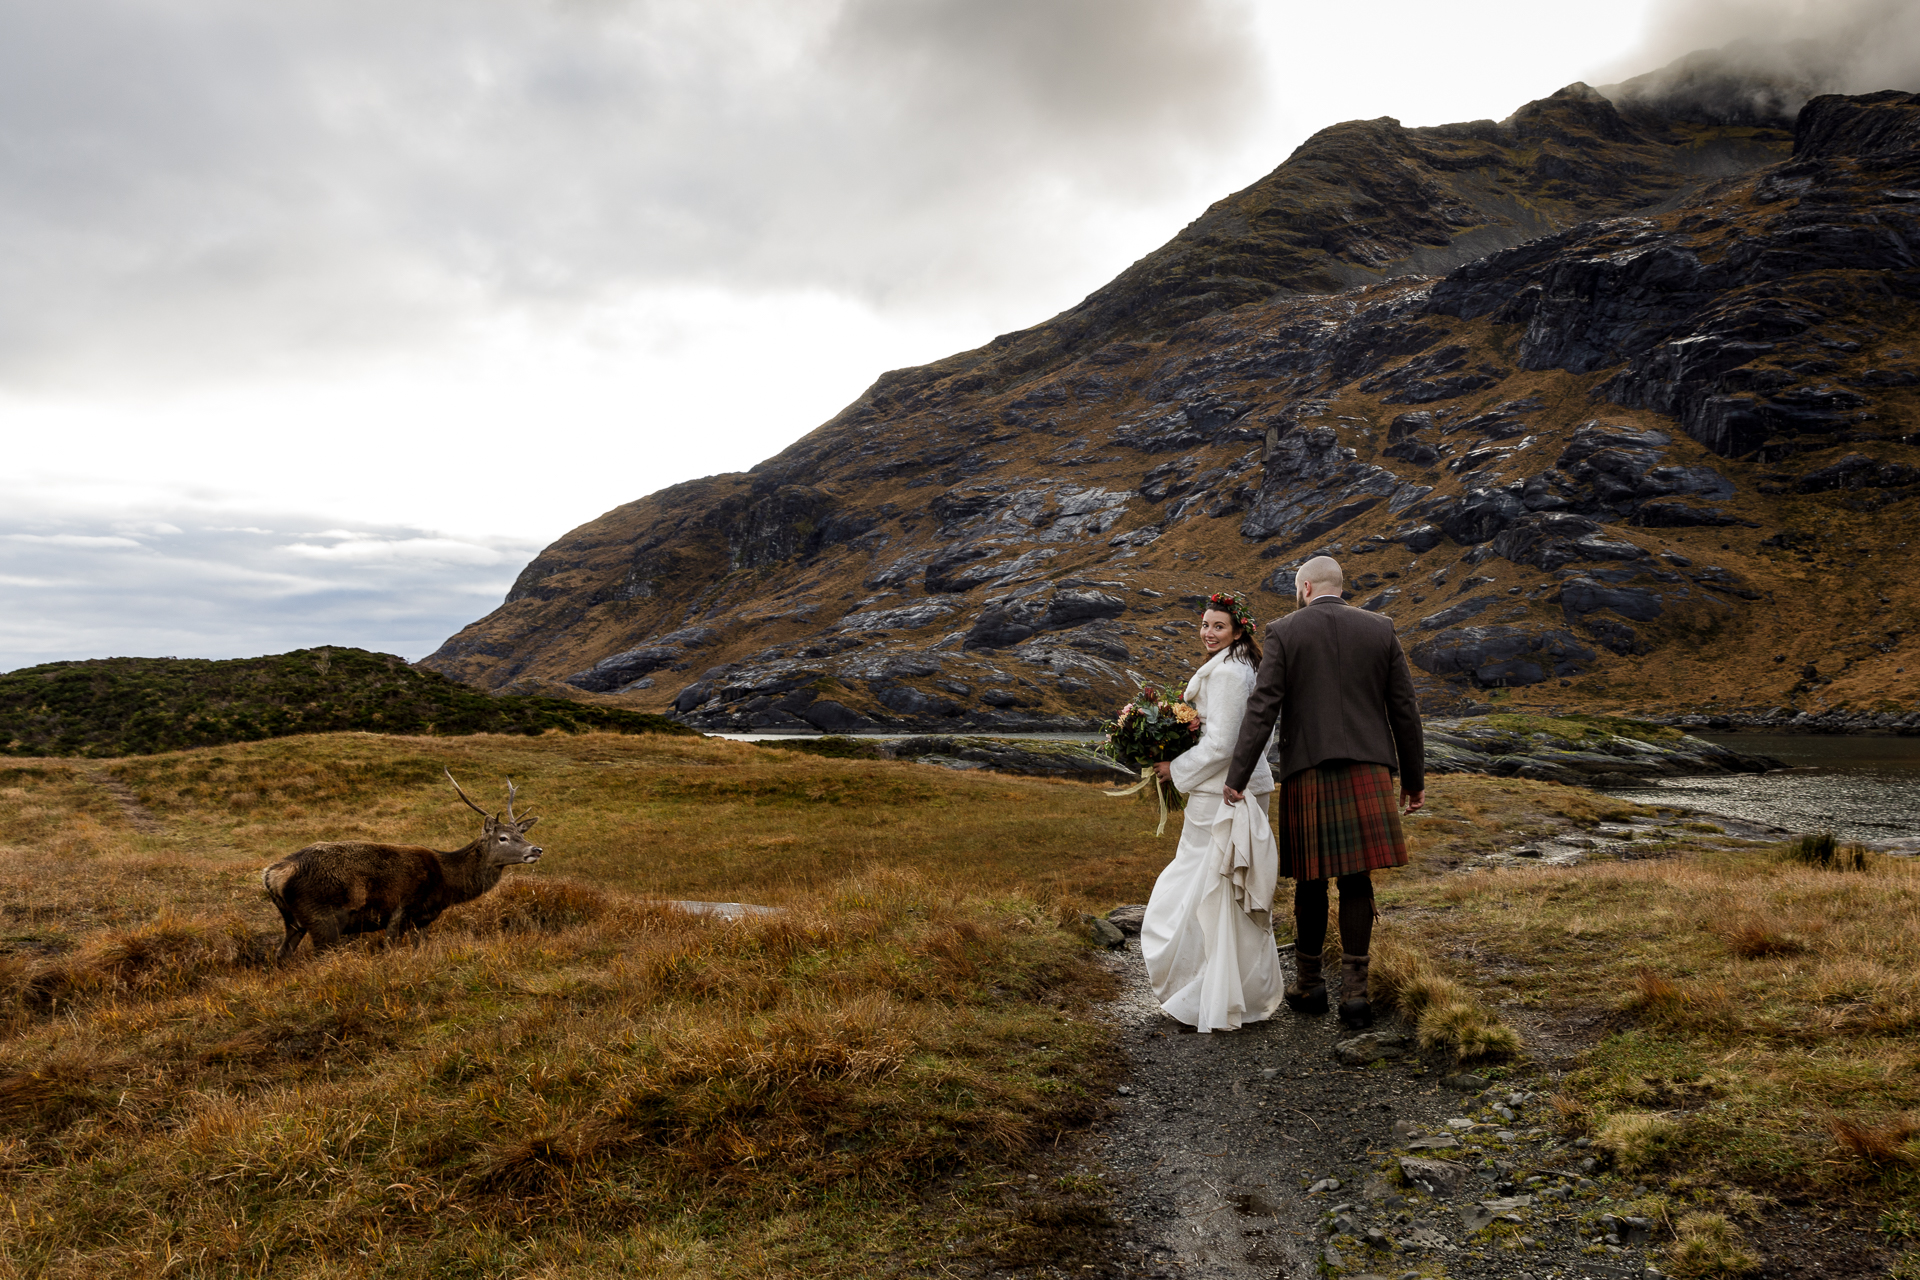 Elopement Photo at the Isle of Skye, Scotland, UK | After a bit of time spent taking some portraits of the newlyweds, we were on our way back to the boat when a beautiful stag just appeared.